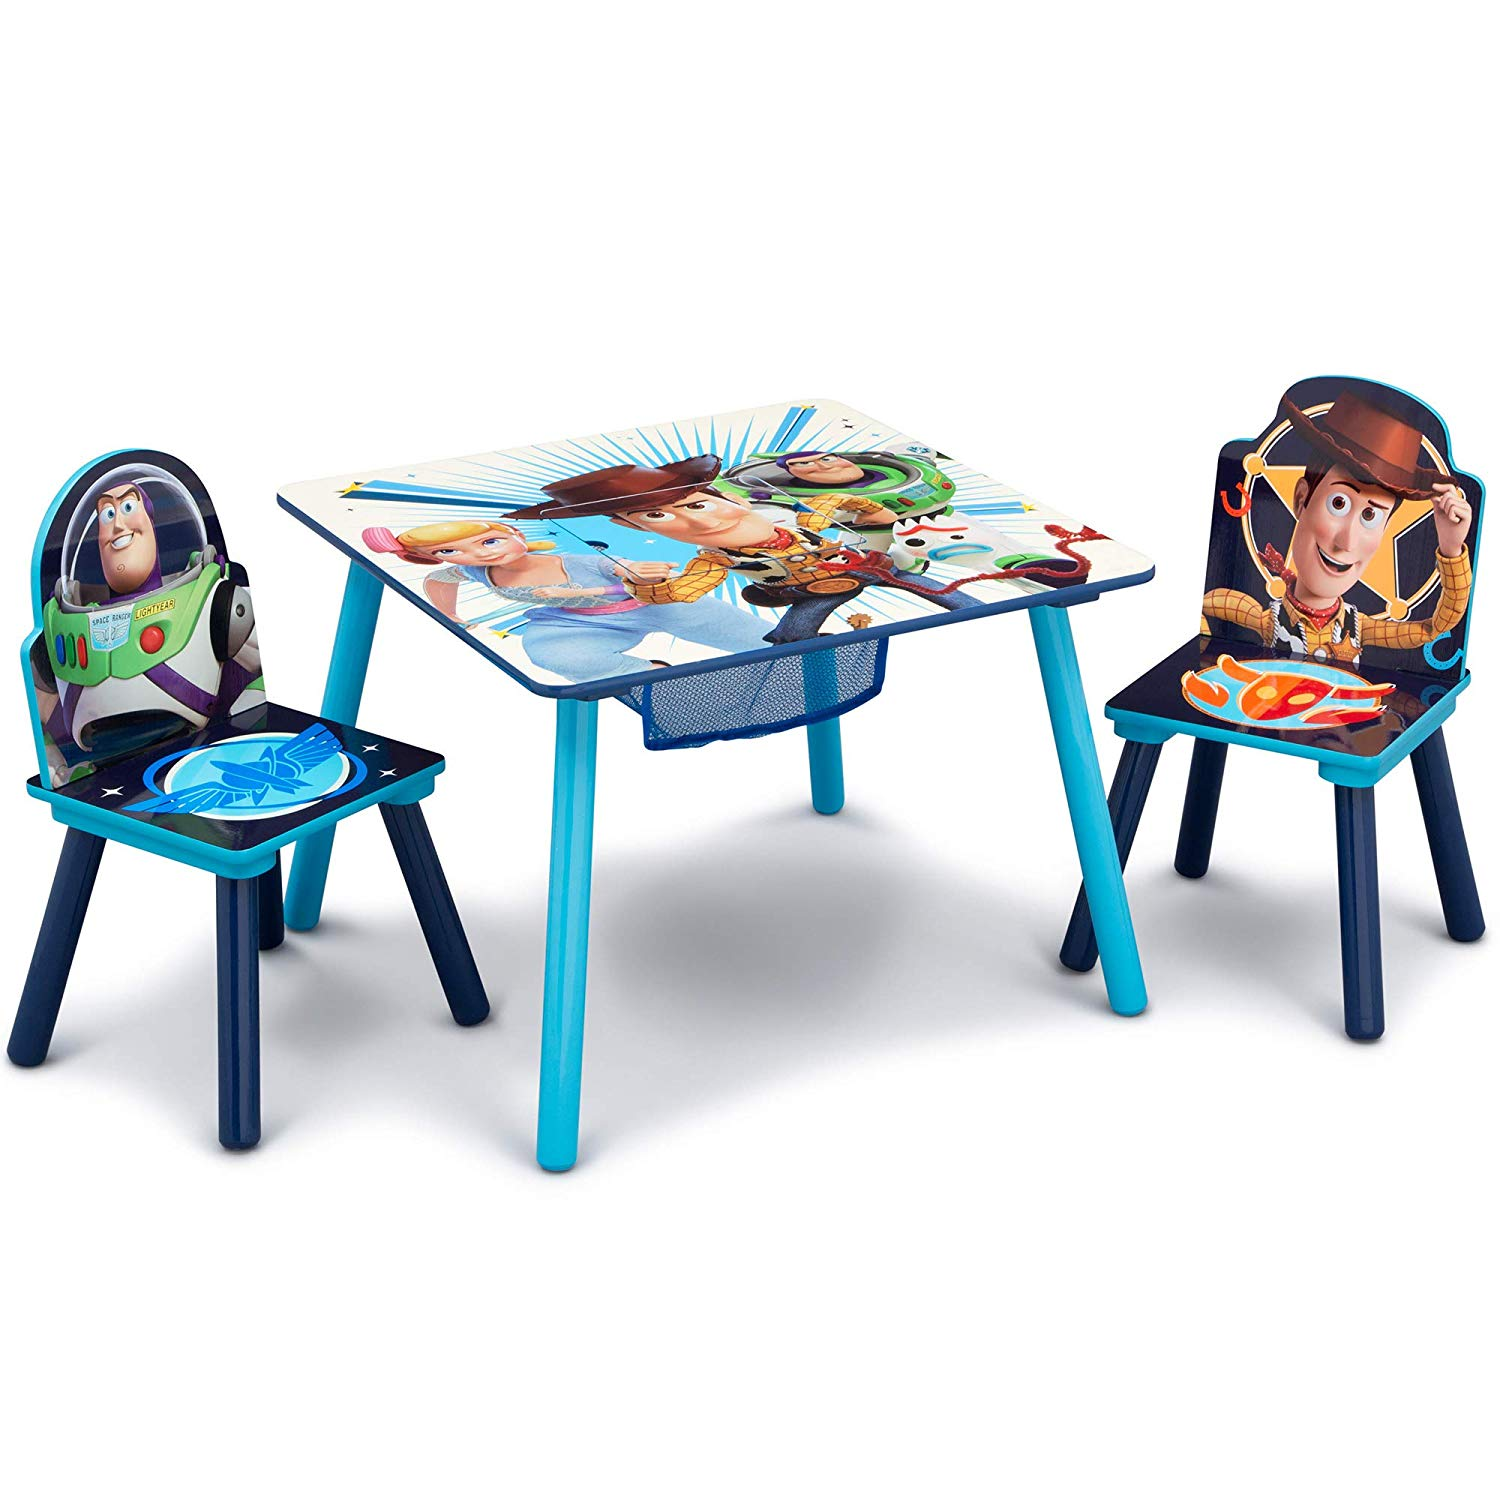 Details About Disney Pixar Toy Story 4 Kids Chair Set And Table Delta Children